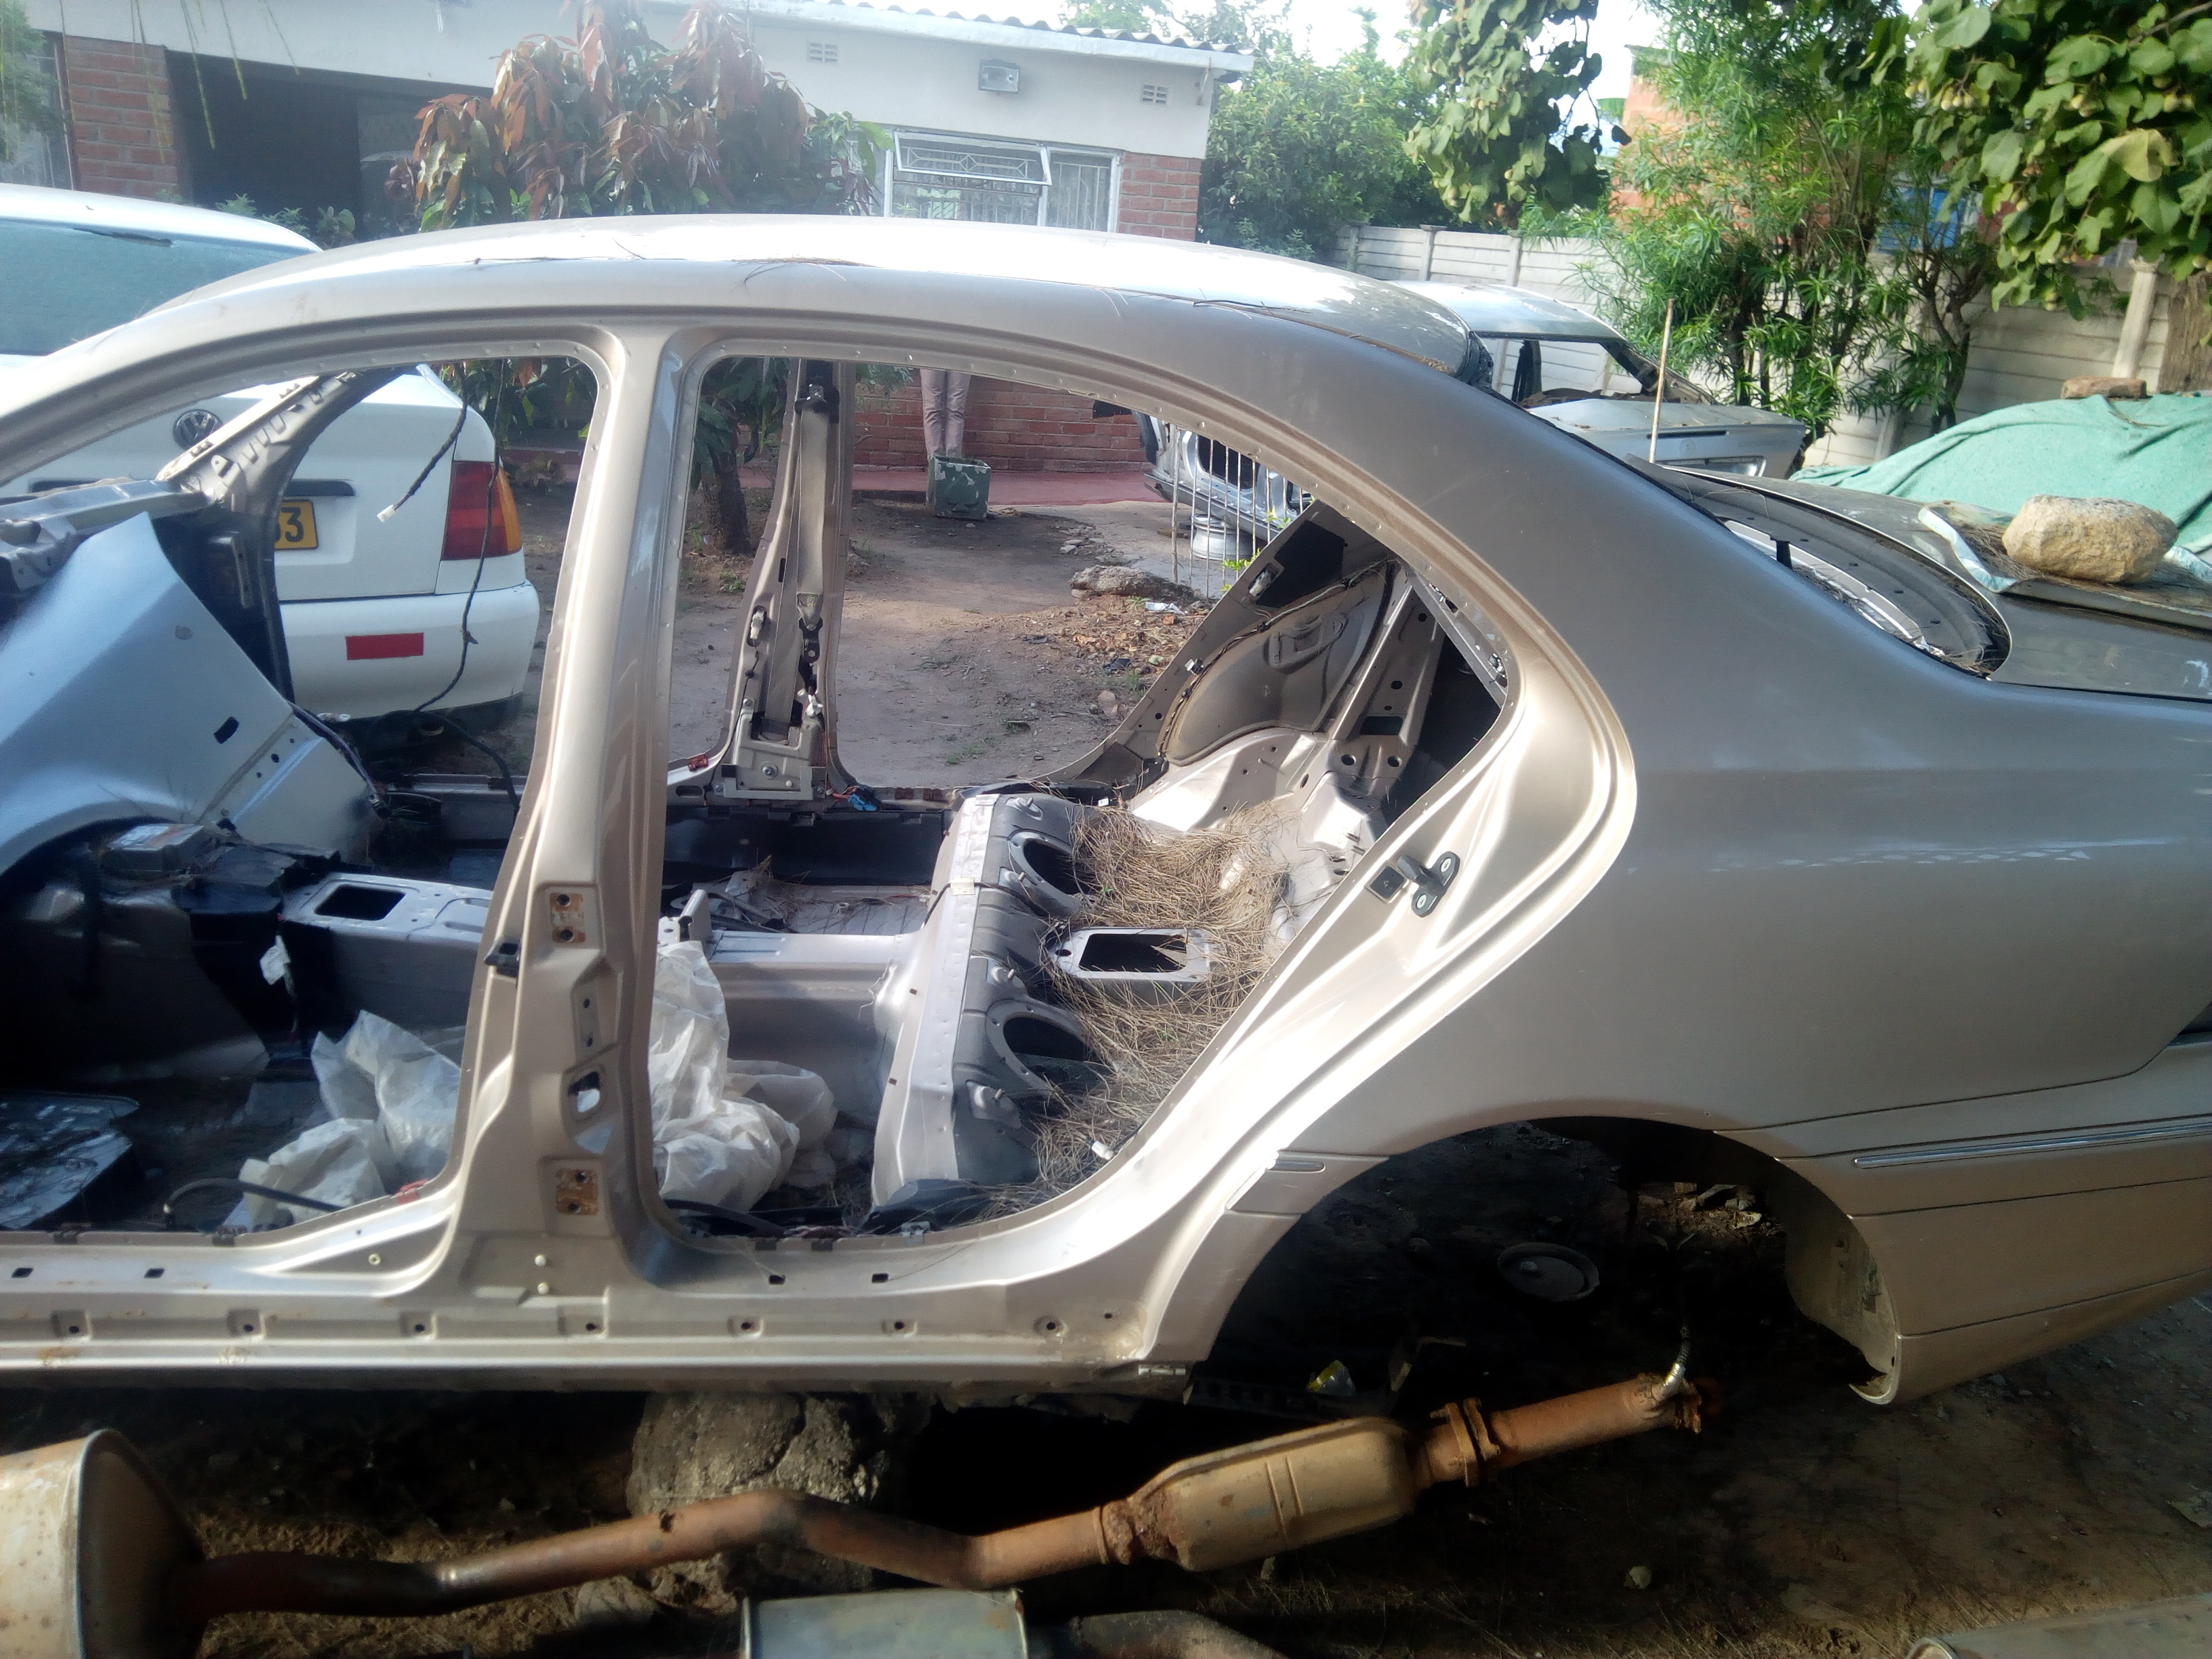 Cars for Sale Classifieds Zimbabwe Beautiful Mercedes Benz W203 C180 Parts Available Connect8 Zimbabwe